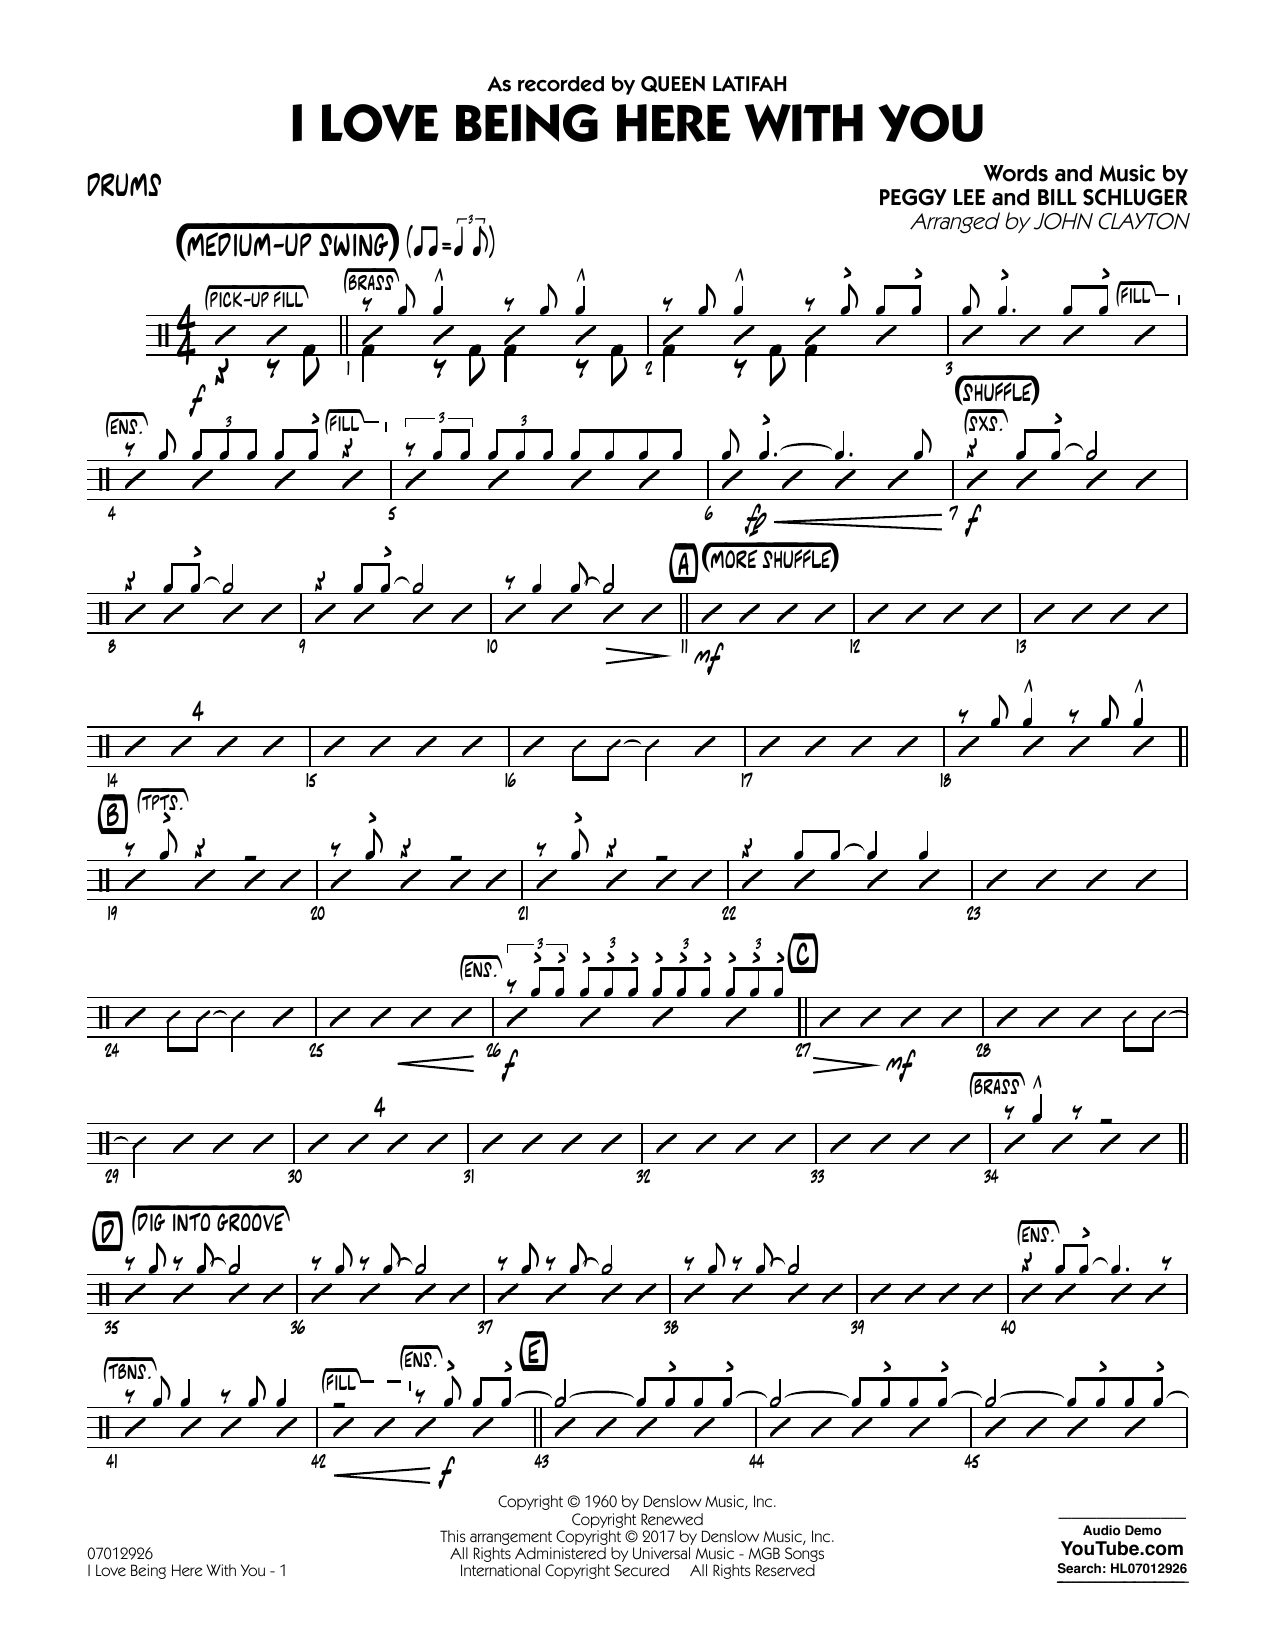 John Clayton I Love Being Here with You (Key: Db) - Drums sheet music notes and chords. Download Printable PDF.